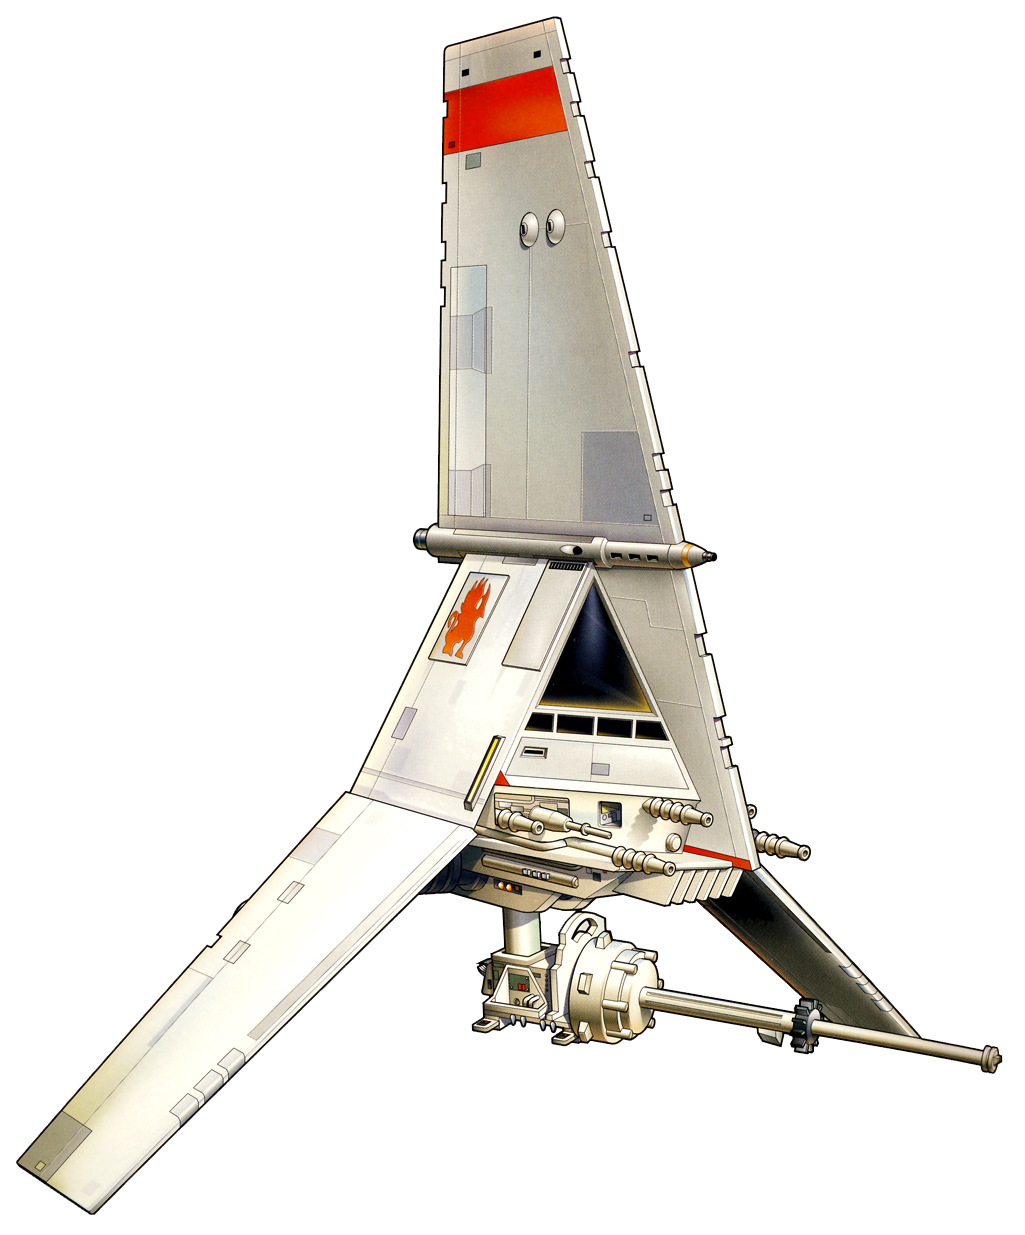 Incom Corporation T-16 skyhopper